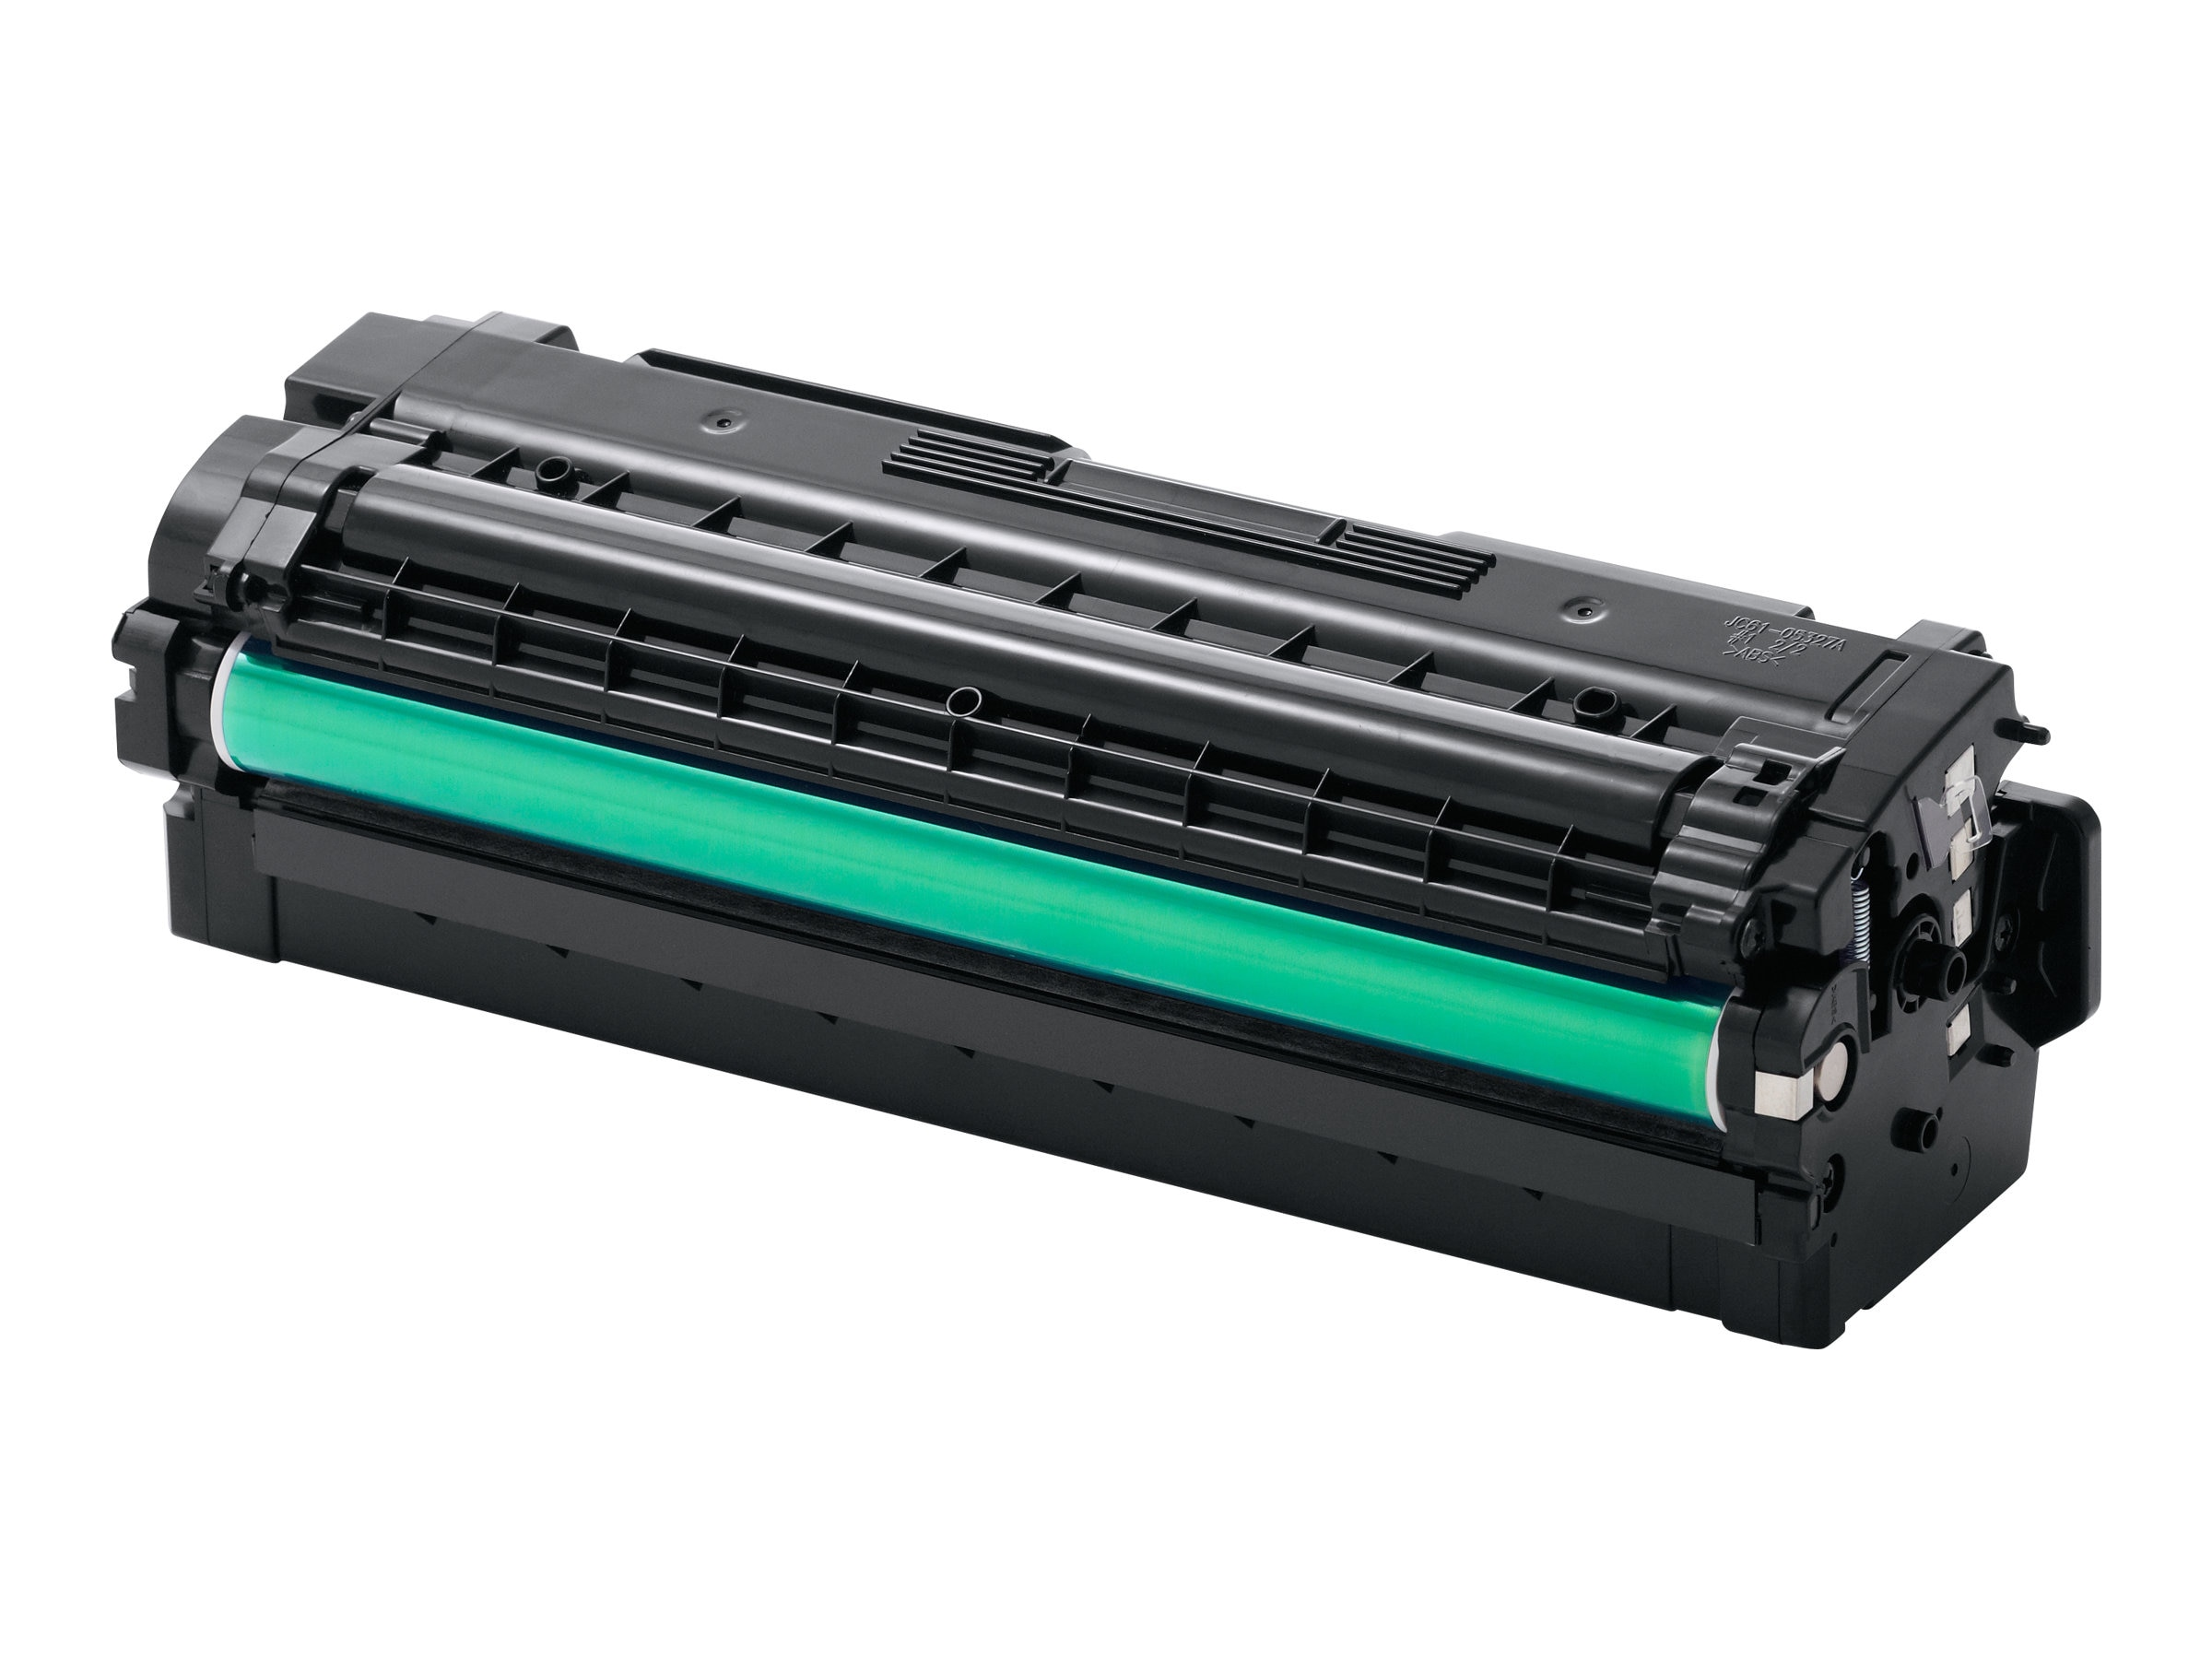 Samsung Cyan High Yield Toner Cartridge for CLX-6260FD & CLX-6260FW Color MFPs & CLP-680ND Color Printer, CLT-C506L